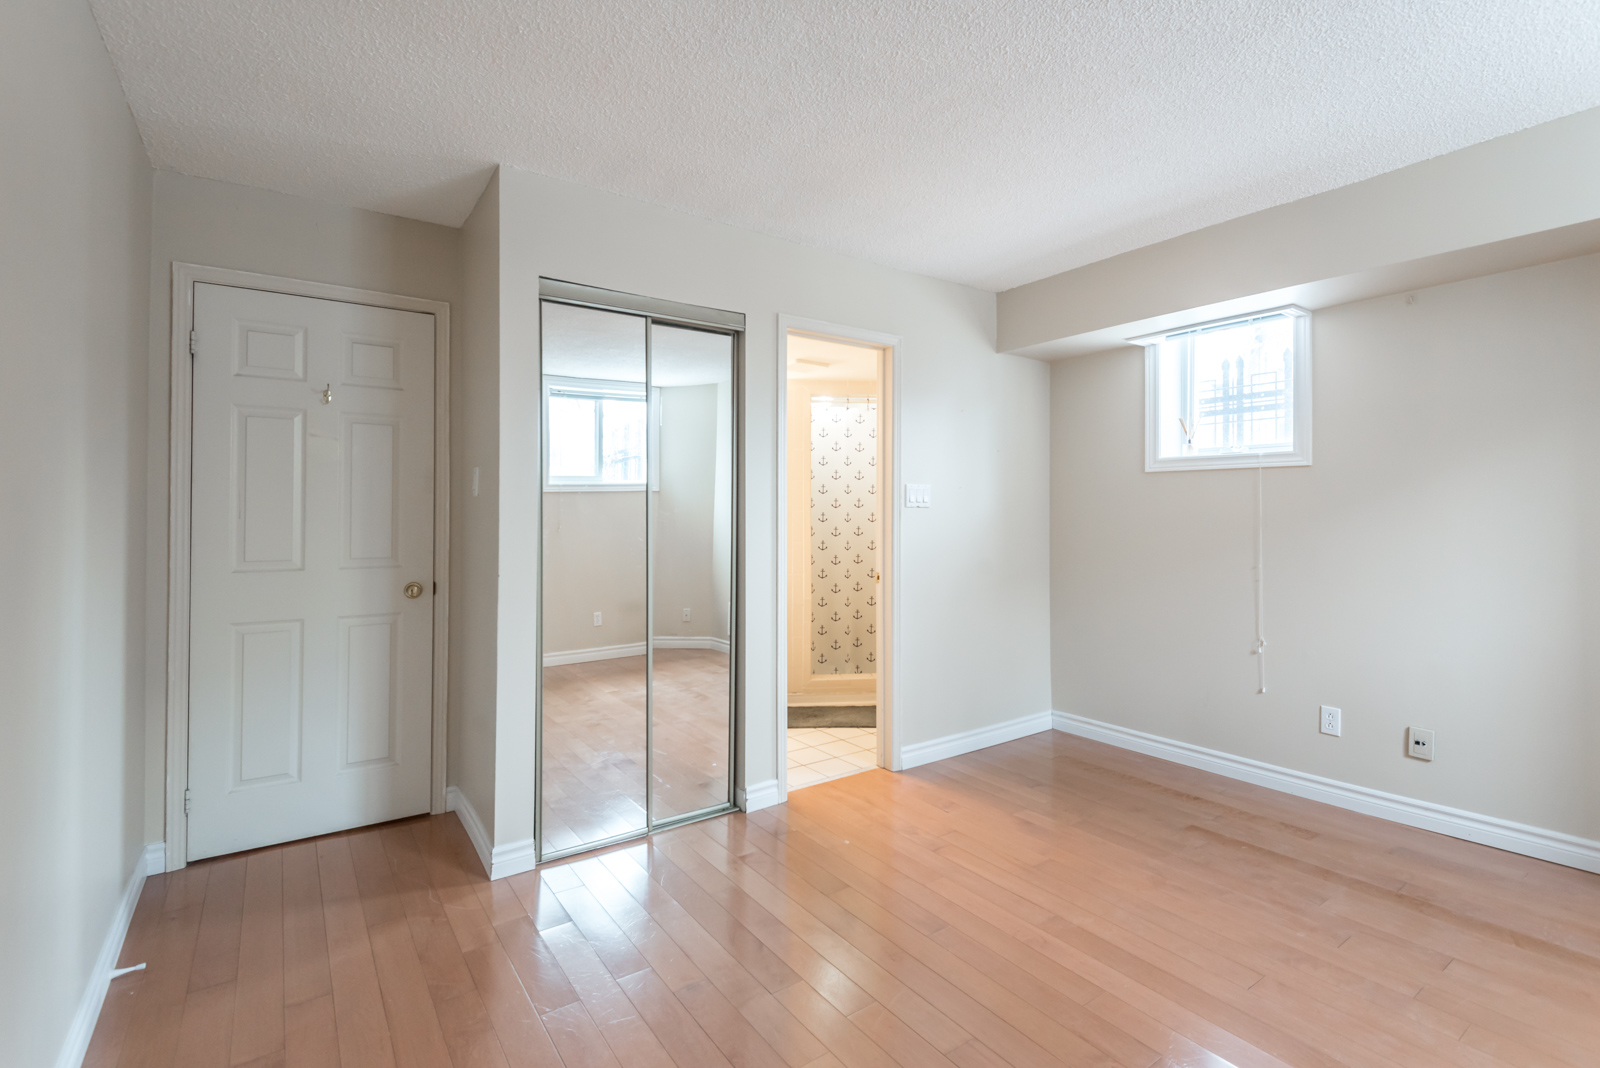 In addition to storage, the closet improves illumination by reflecting sunlight of its mirror doors.